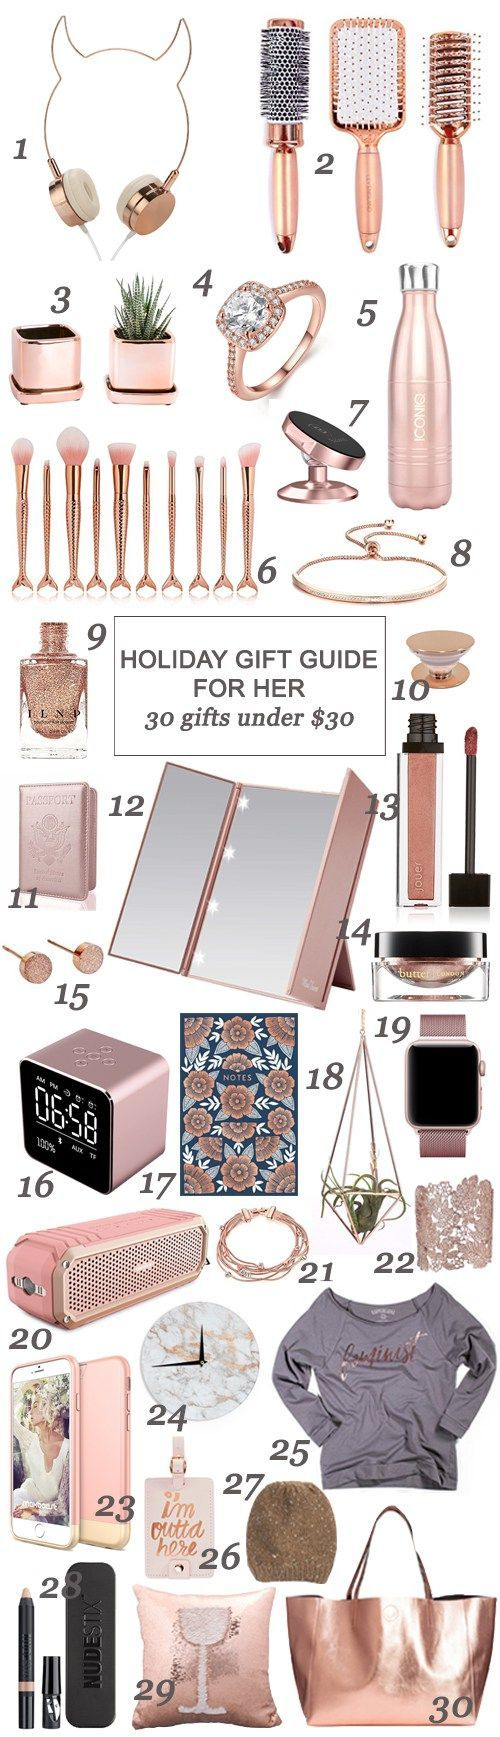 Holiday Gift Guide For Her: 30 Gifts Under $30 | Gifts for woman ...